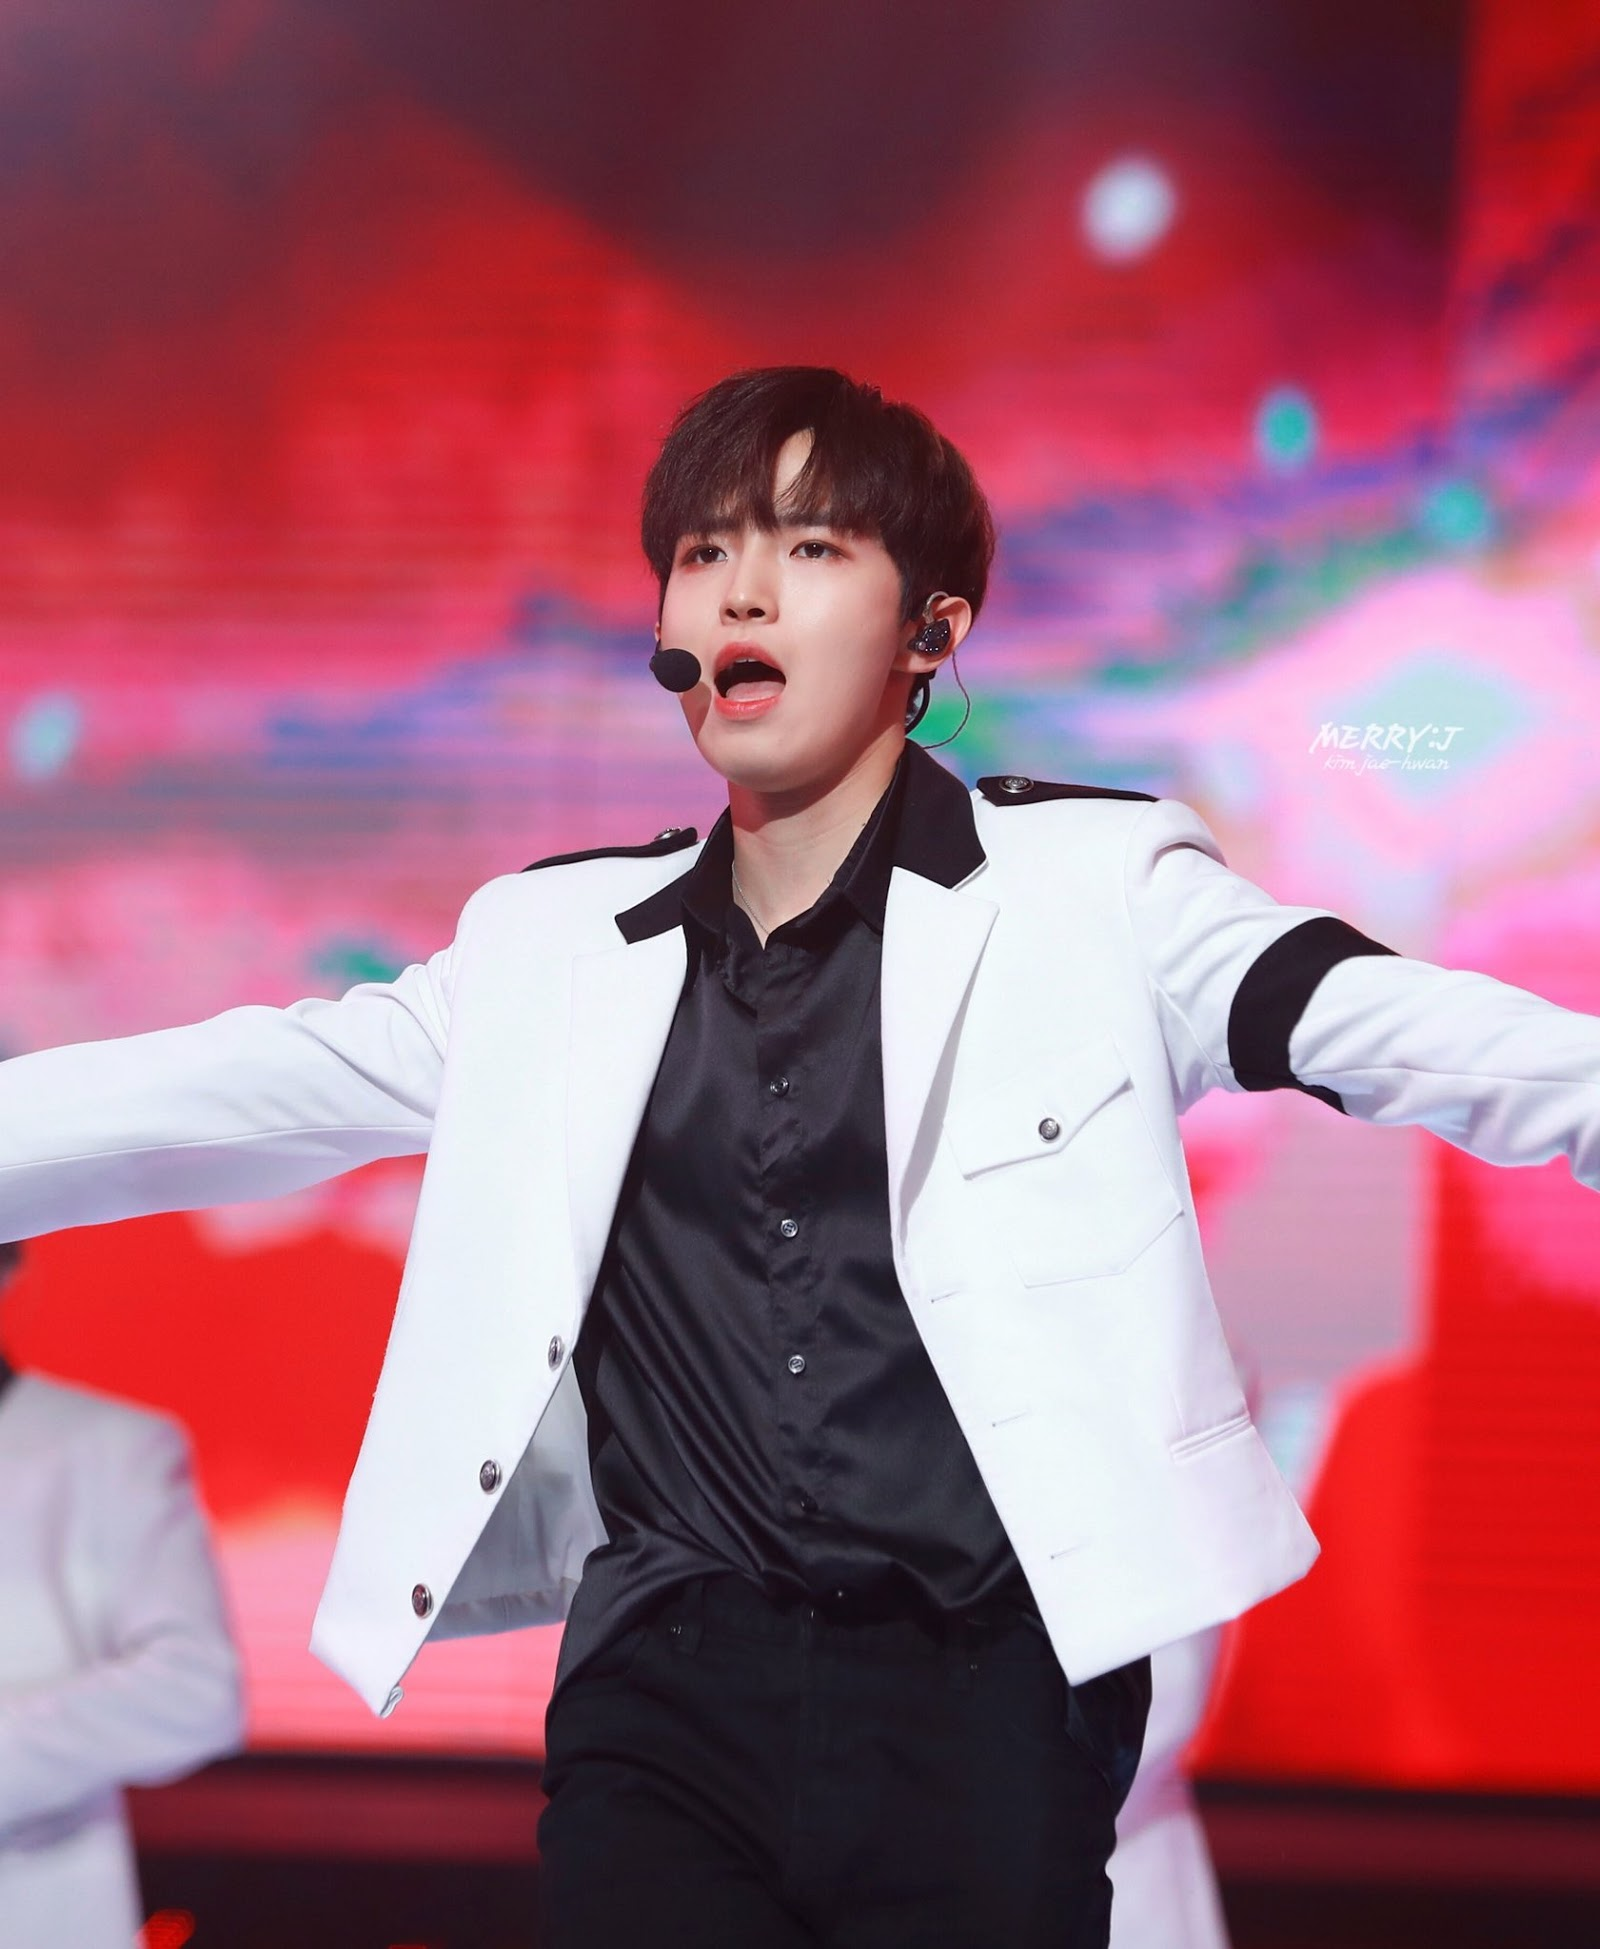 MBC Cut Kim Jae Hwan's Performance In The Middle, Fans Demand An Apology